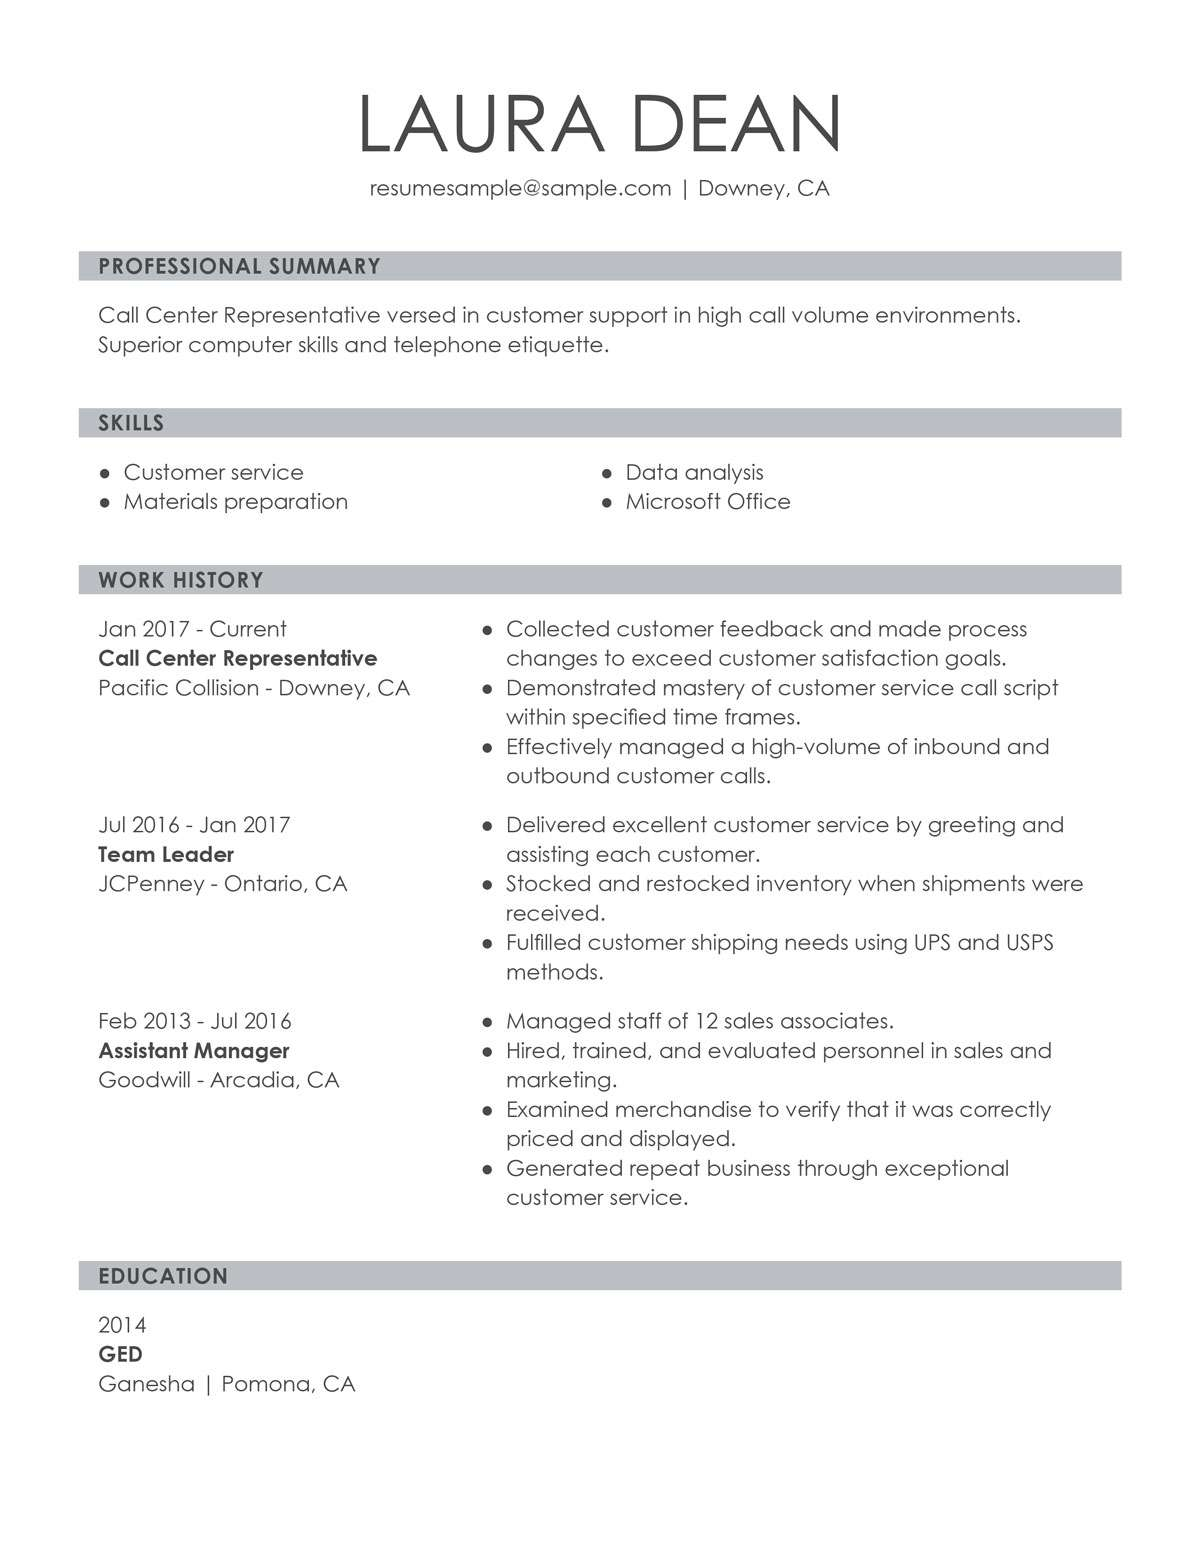 customize our customer representative resume example build service number call center Resume Build A Resume Customer Service Number